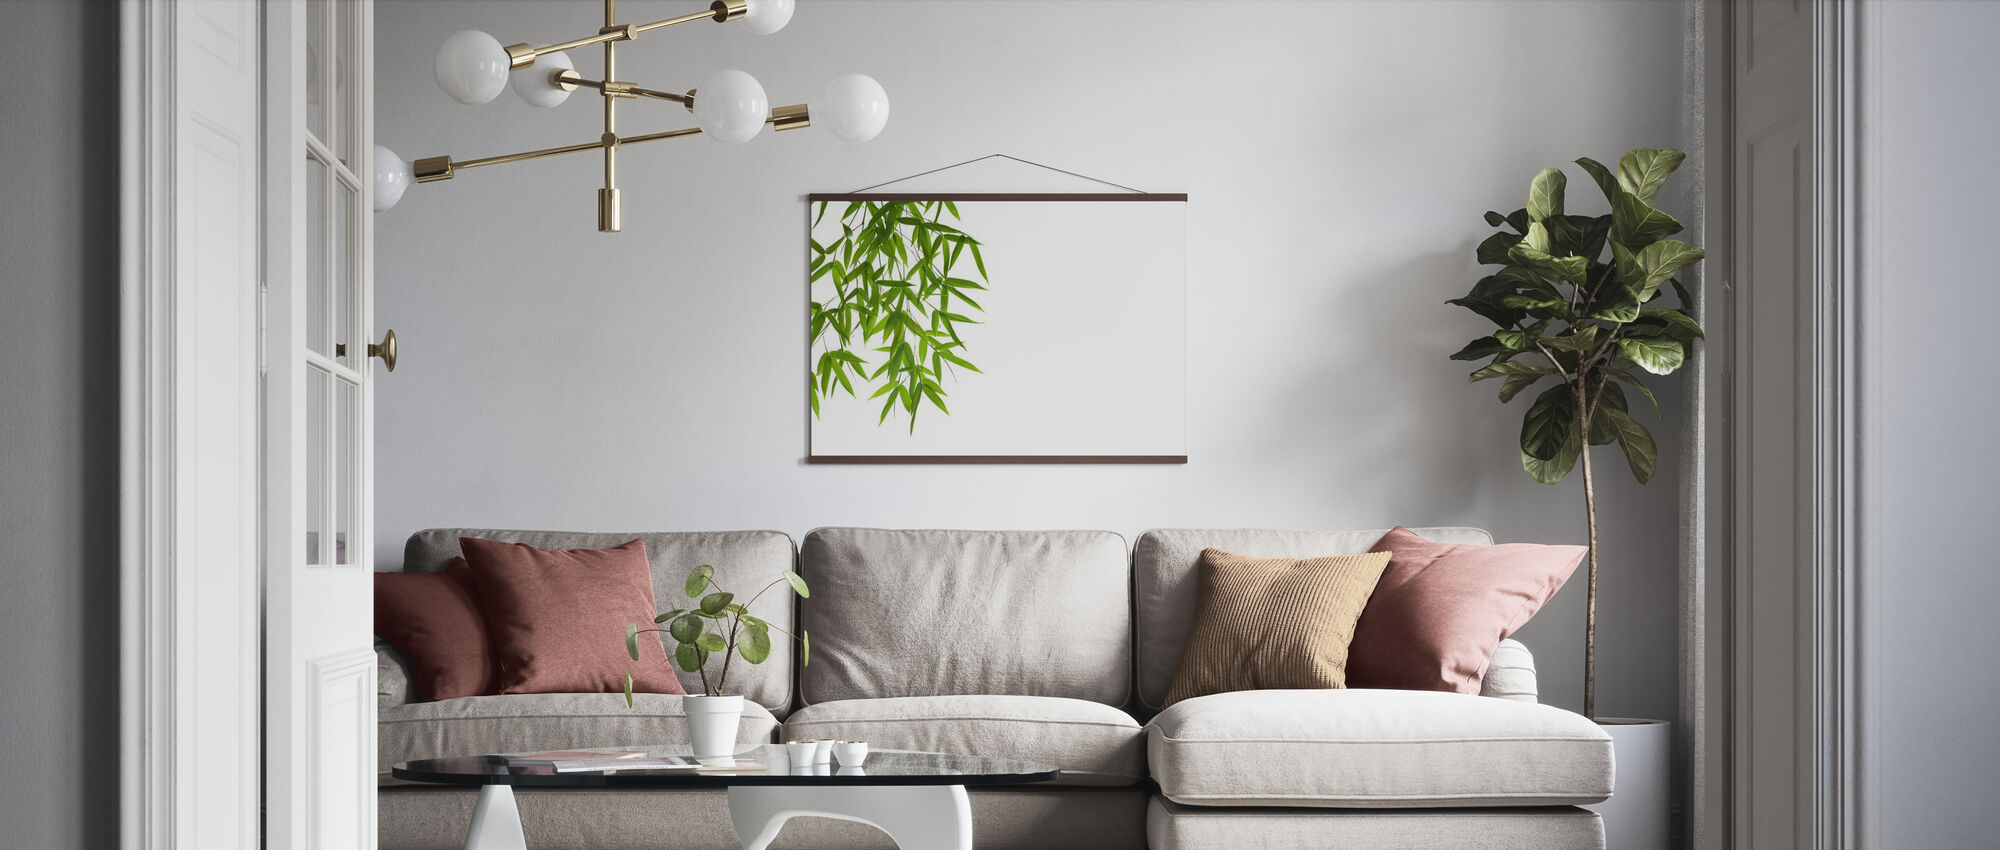 Hanging Bamboo - Poster - Living Room